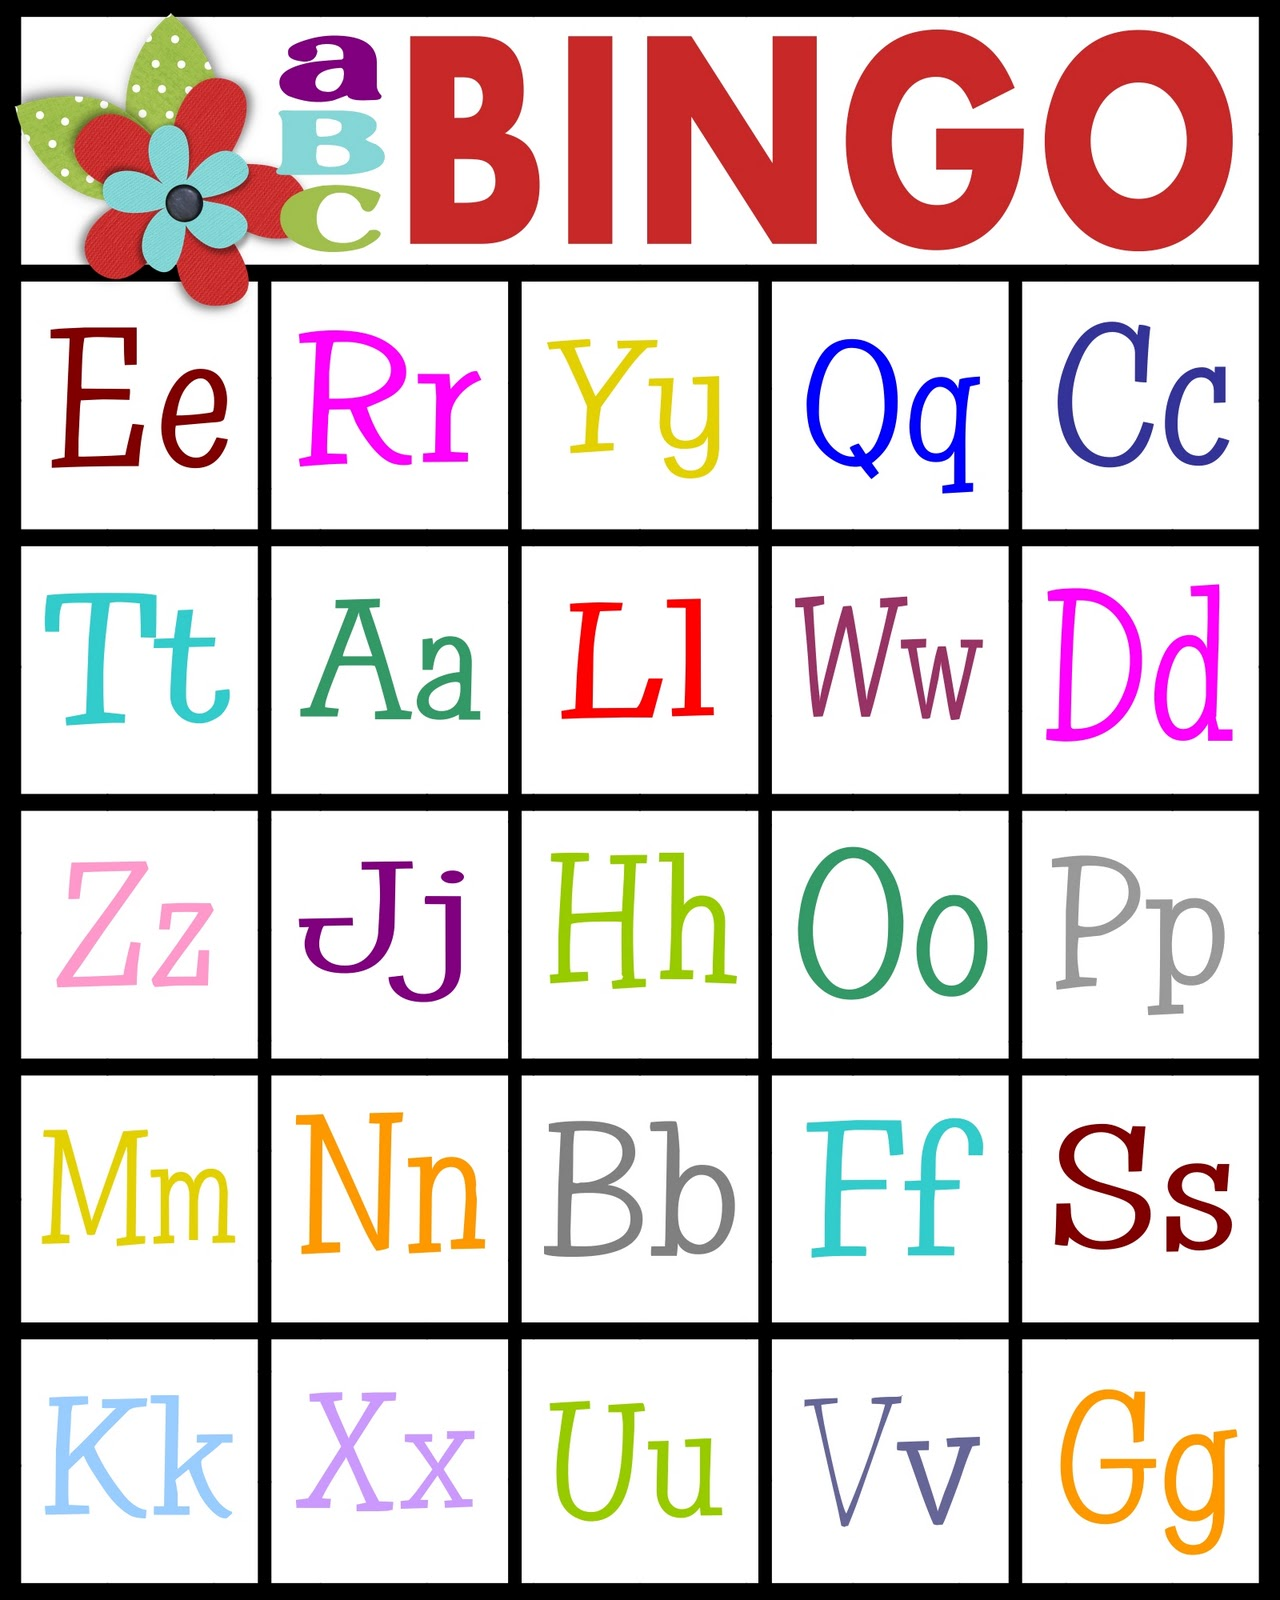 worksheet Bingo Worksheet printable activity game and hebrew alphabet bingo cards to sassy sanctuary abc 39 s free printable